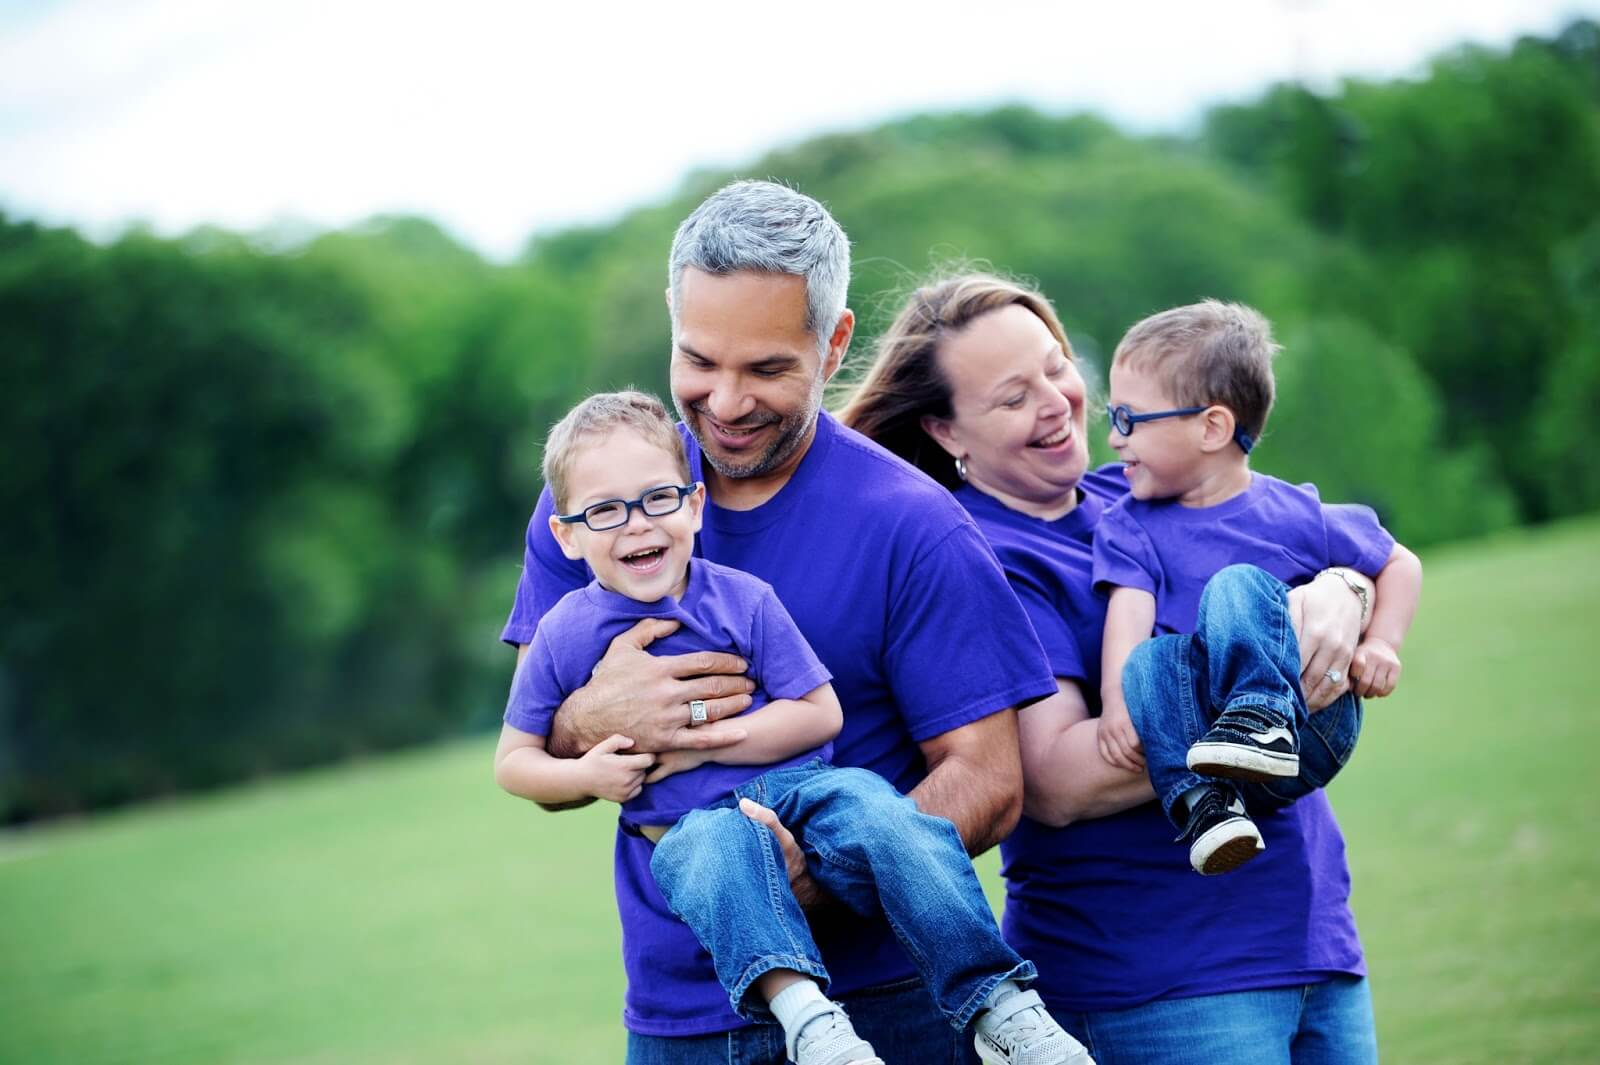 March of Dimes, March of Dimes: Why I March